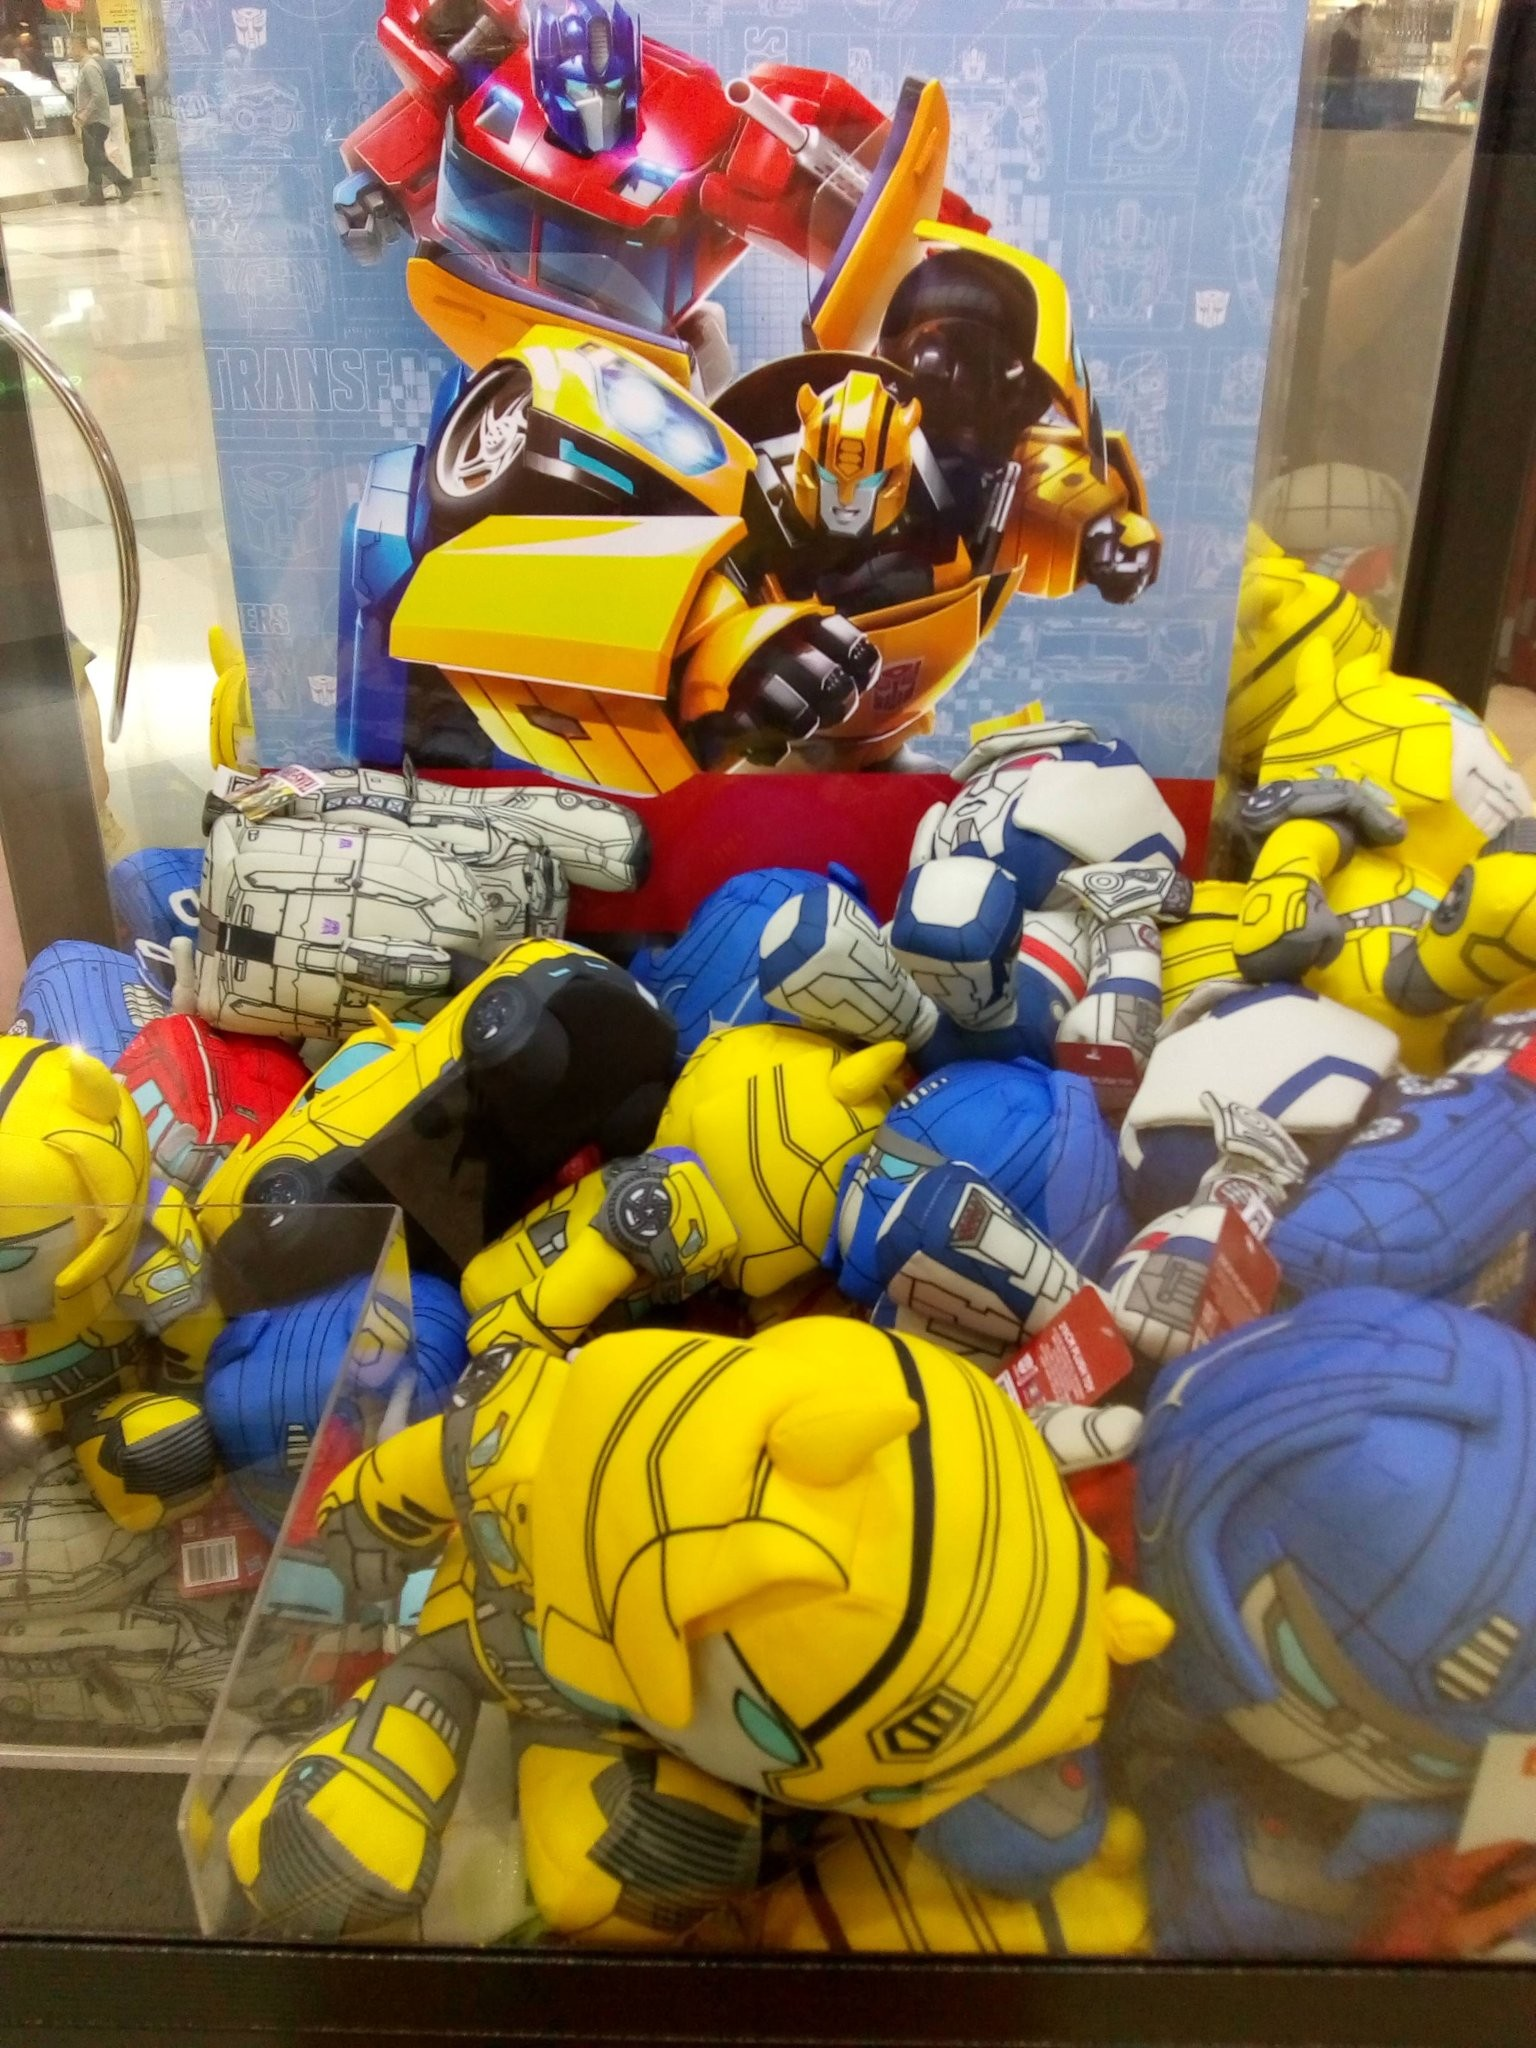 Transformers News: New Transformers Themed Crane Machine with Exclusive Evergreen Design Plushies Found